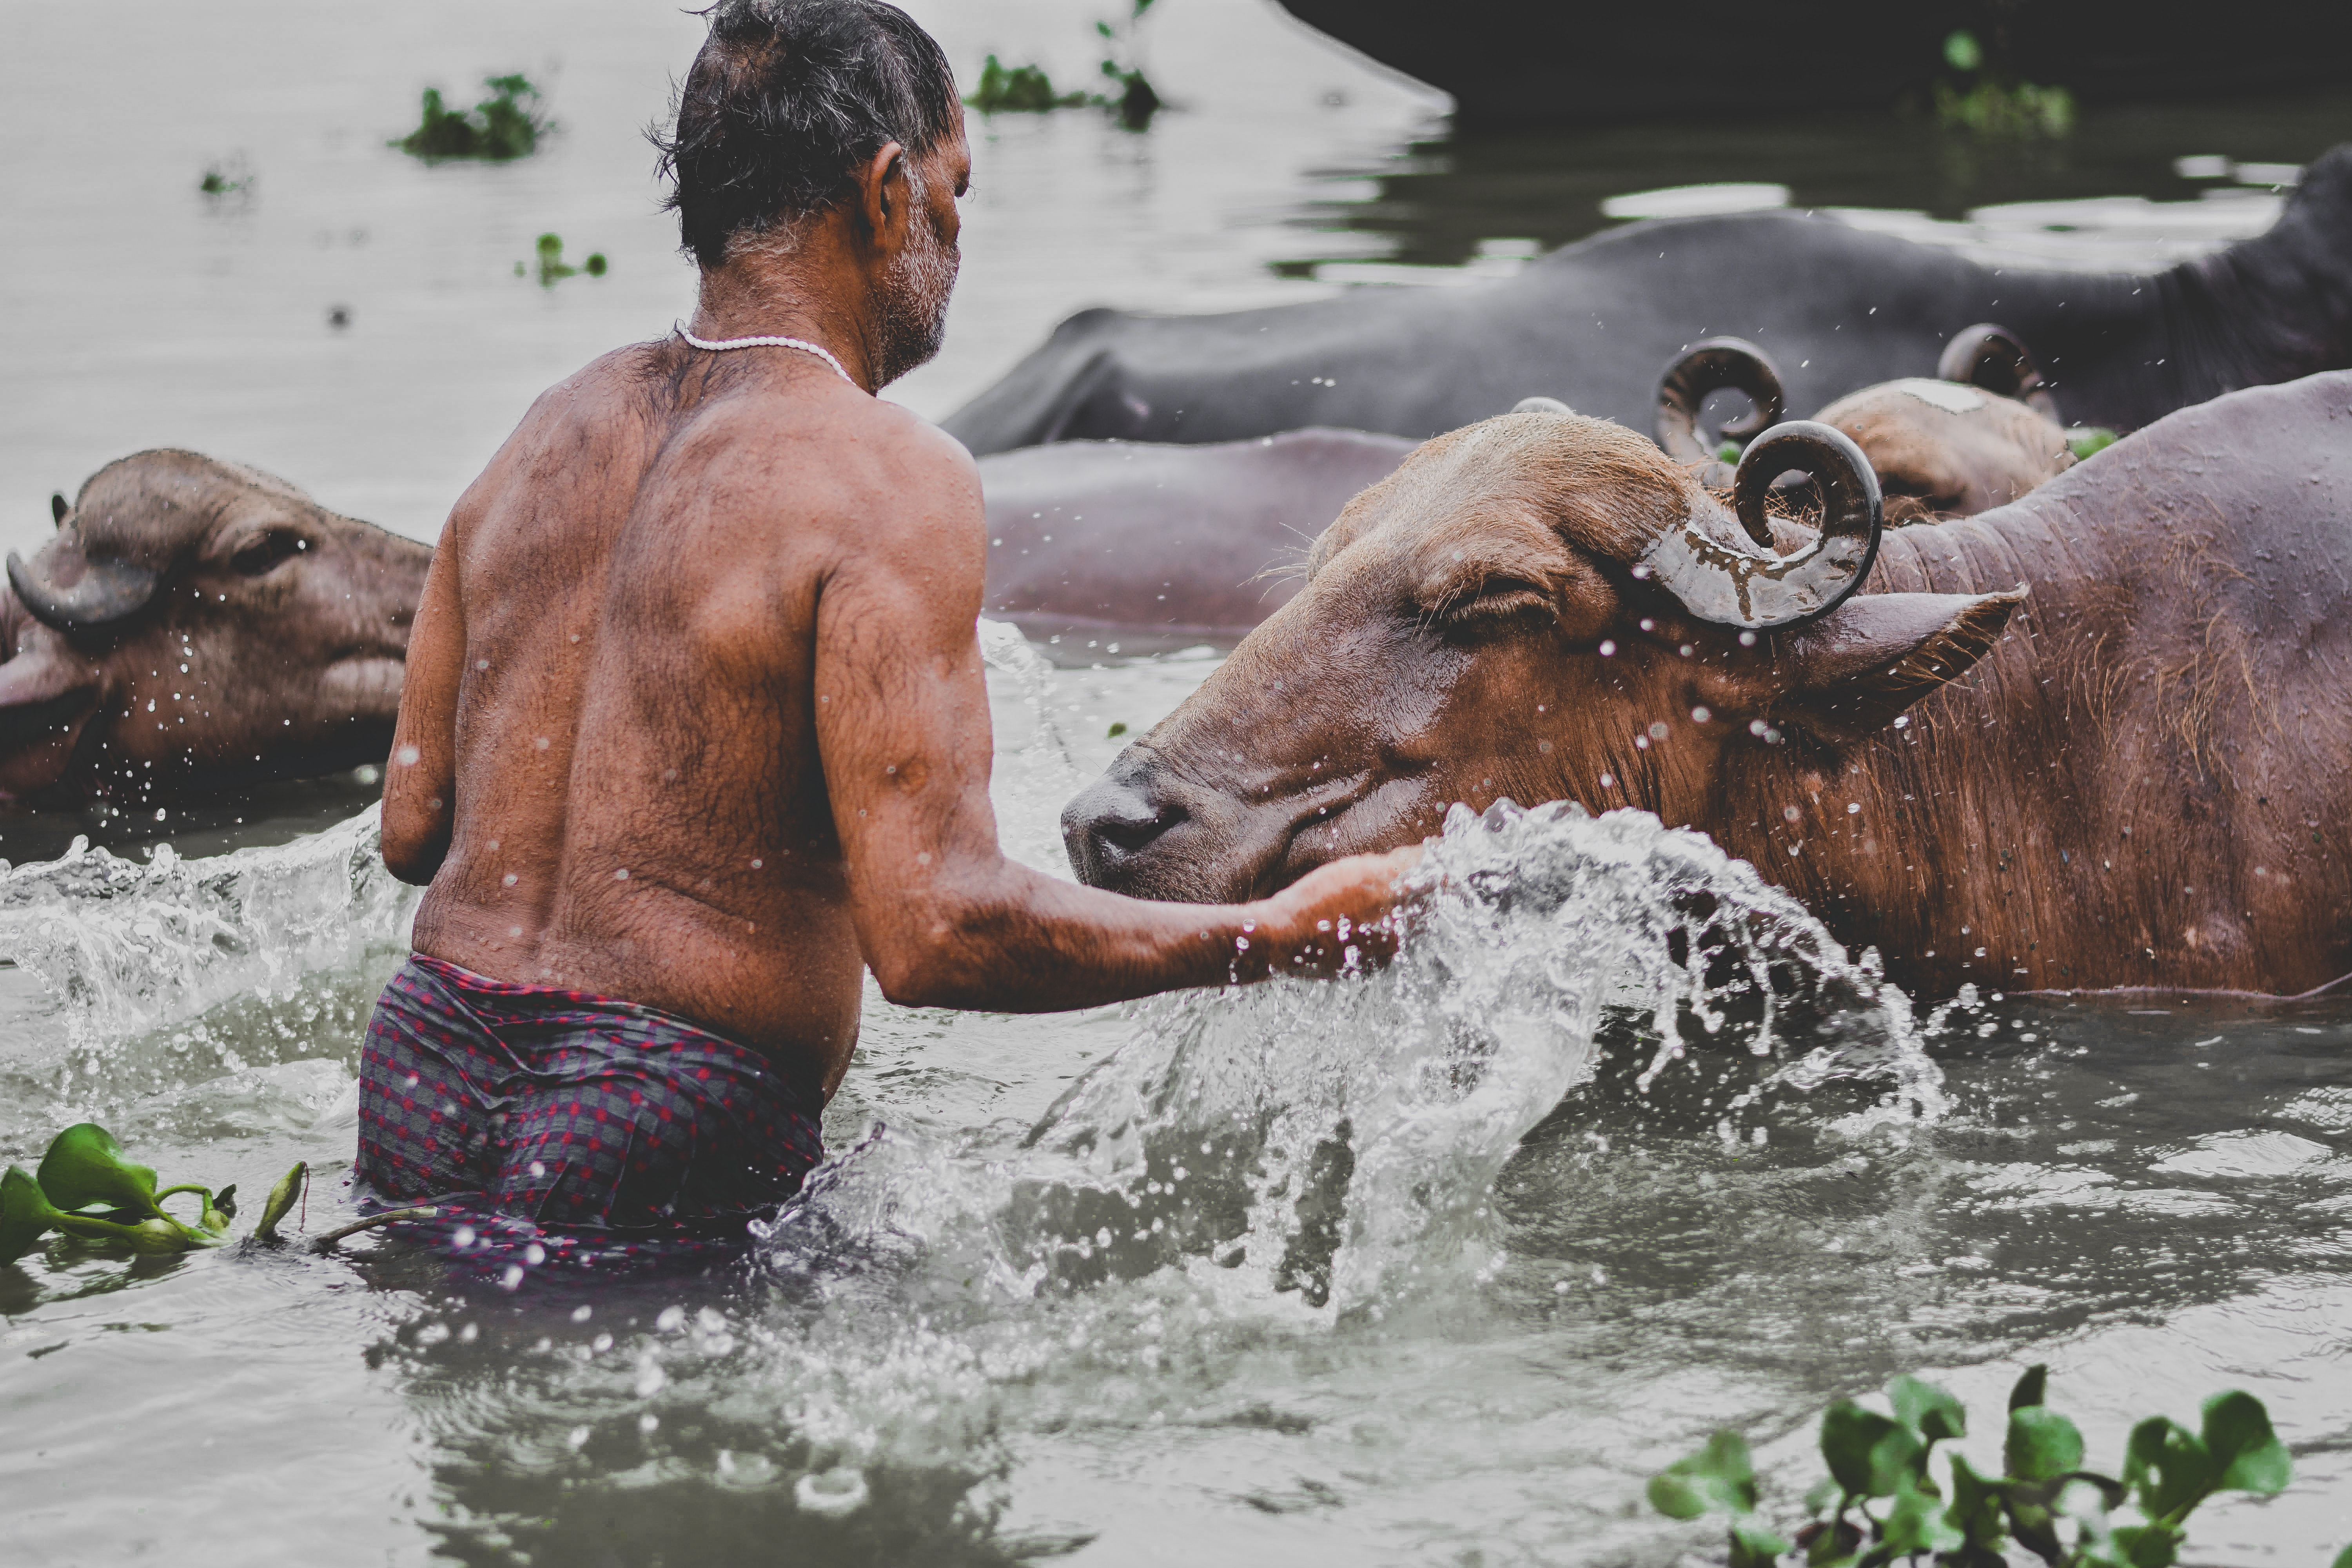 person on body of water surrounded with buffaloes